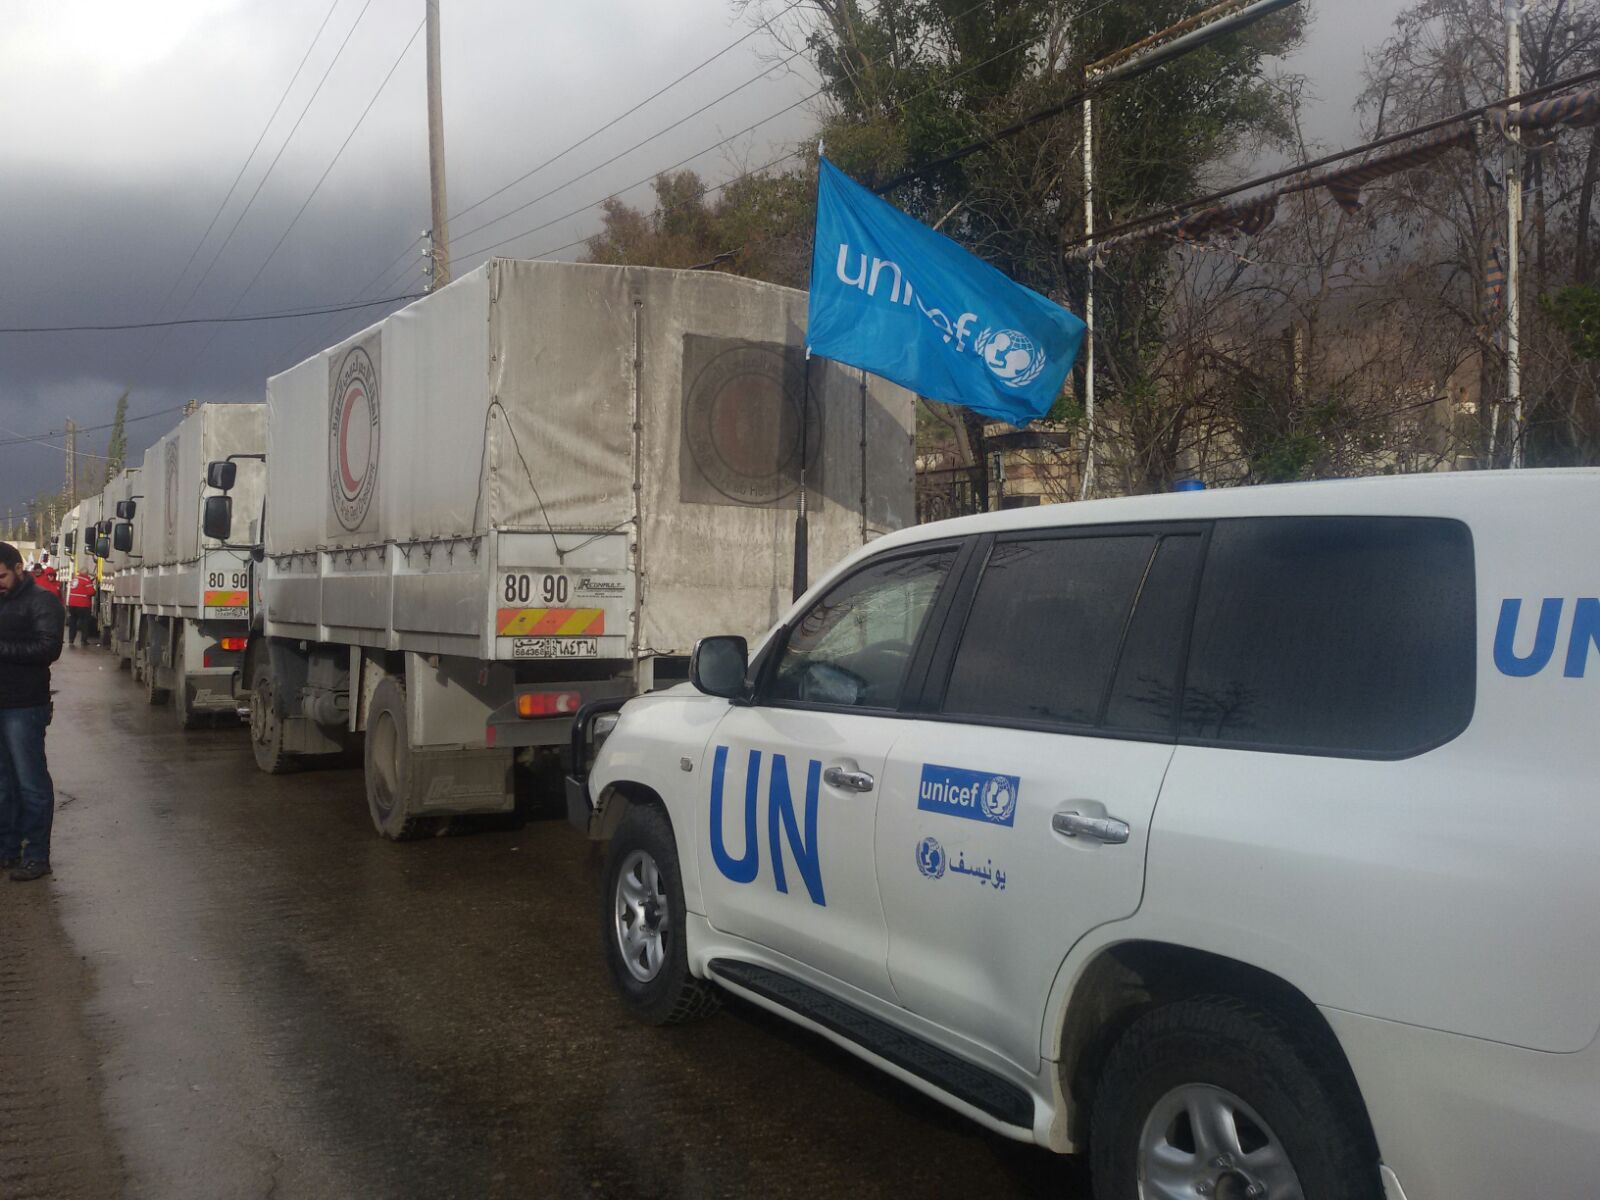 UN vehicles delivering supplies